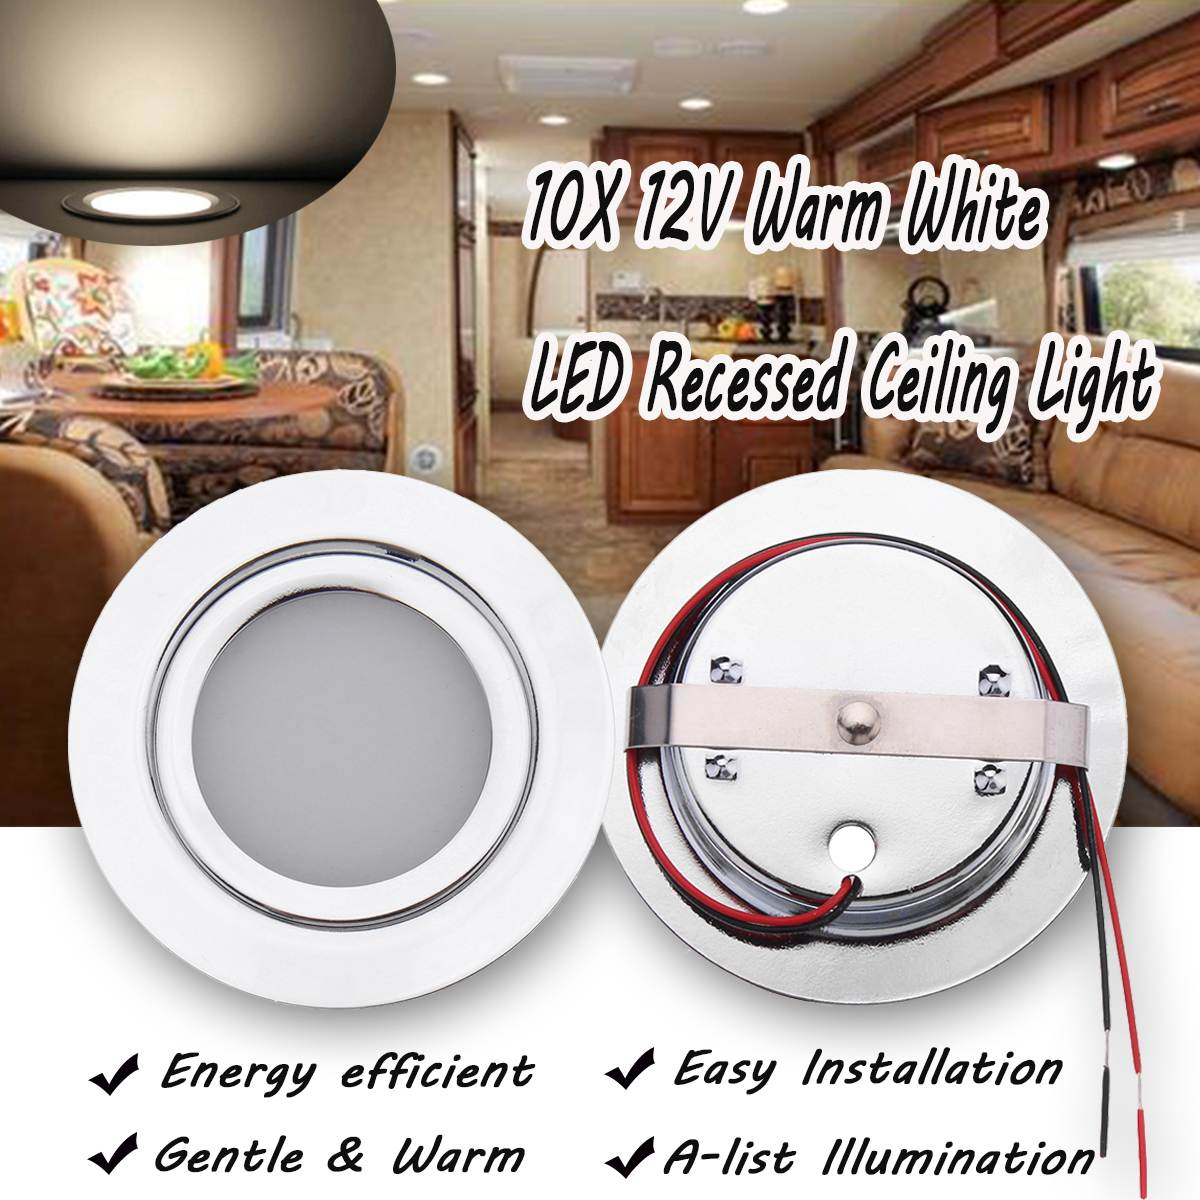 10pcs 12V 70mm LED Recessed Ceiling Light for Camper RV Cabinet Dimmable Warm White Dome Light Interior LED Lamp Motorhome Boat